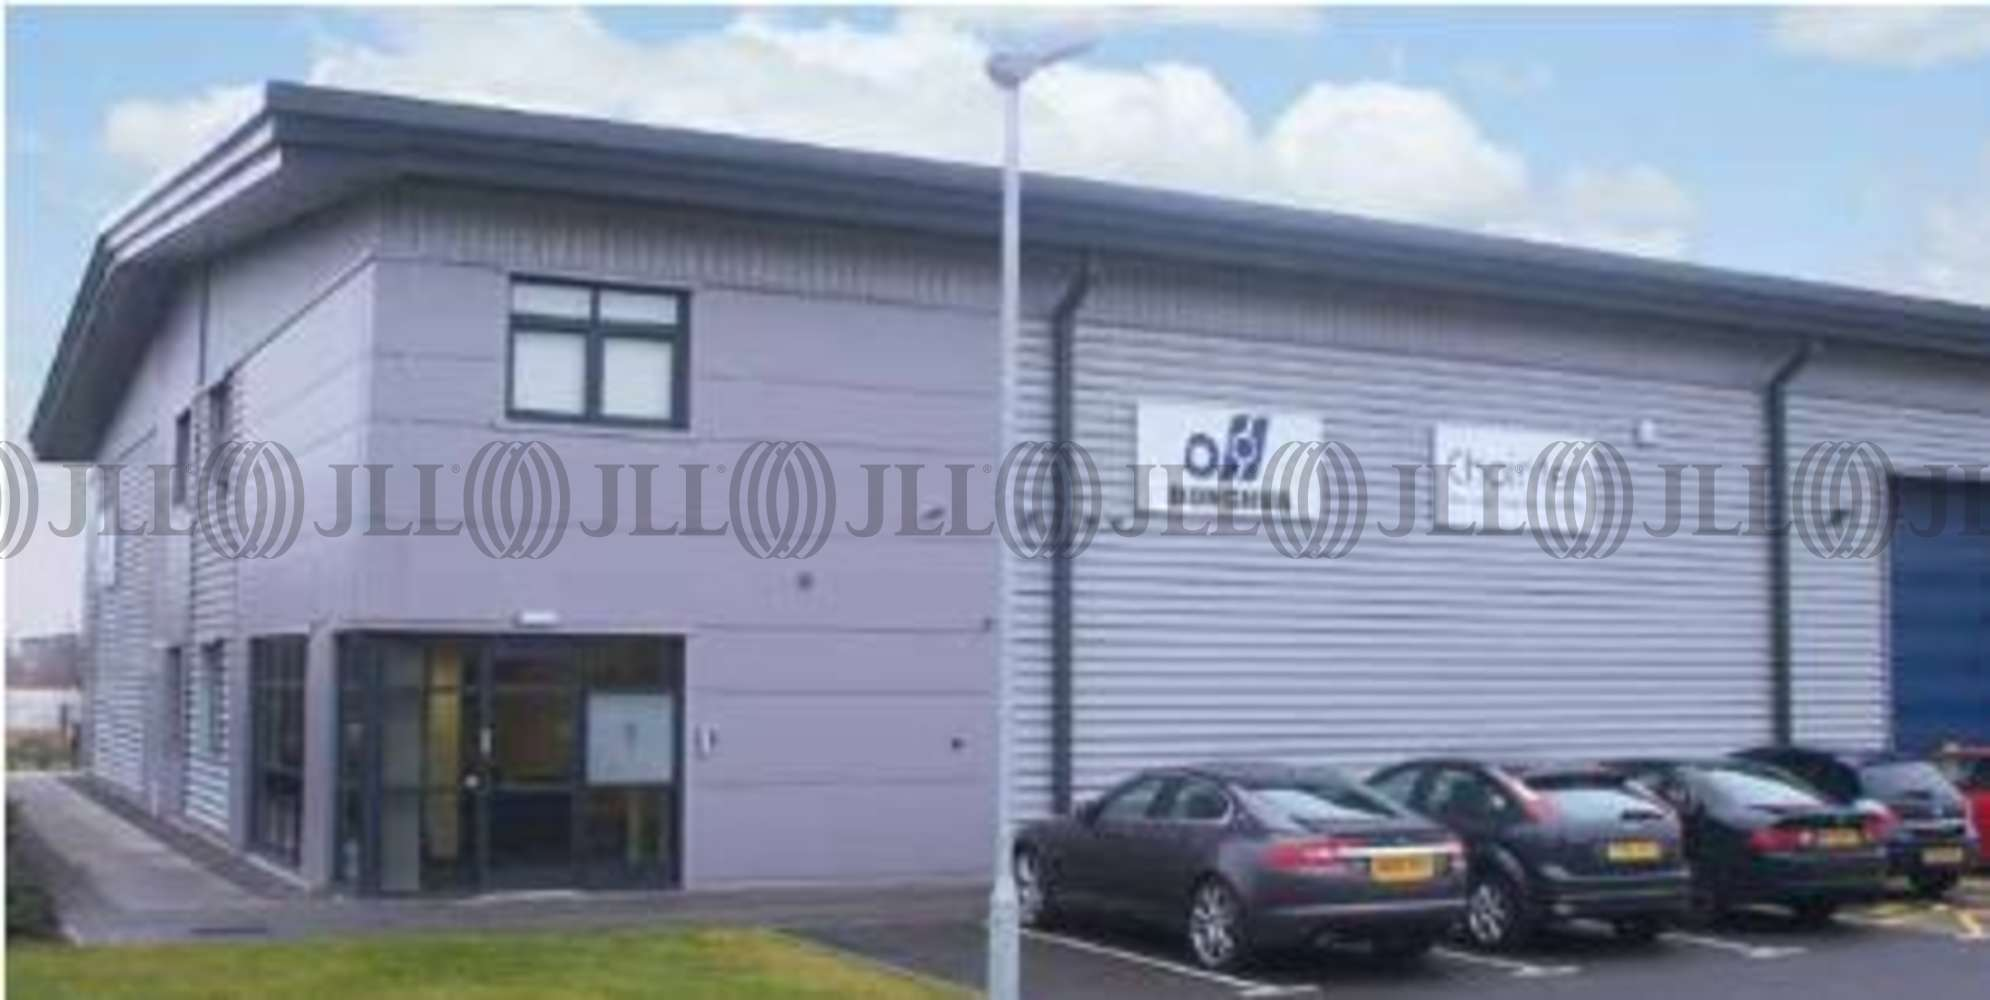 Industrial and logistics Wednesfield, WV11 3DR - Unit 1A - 2